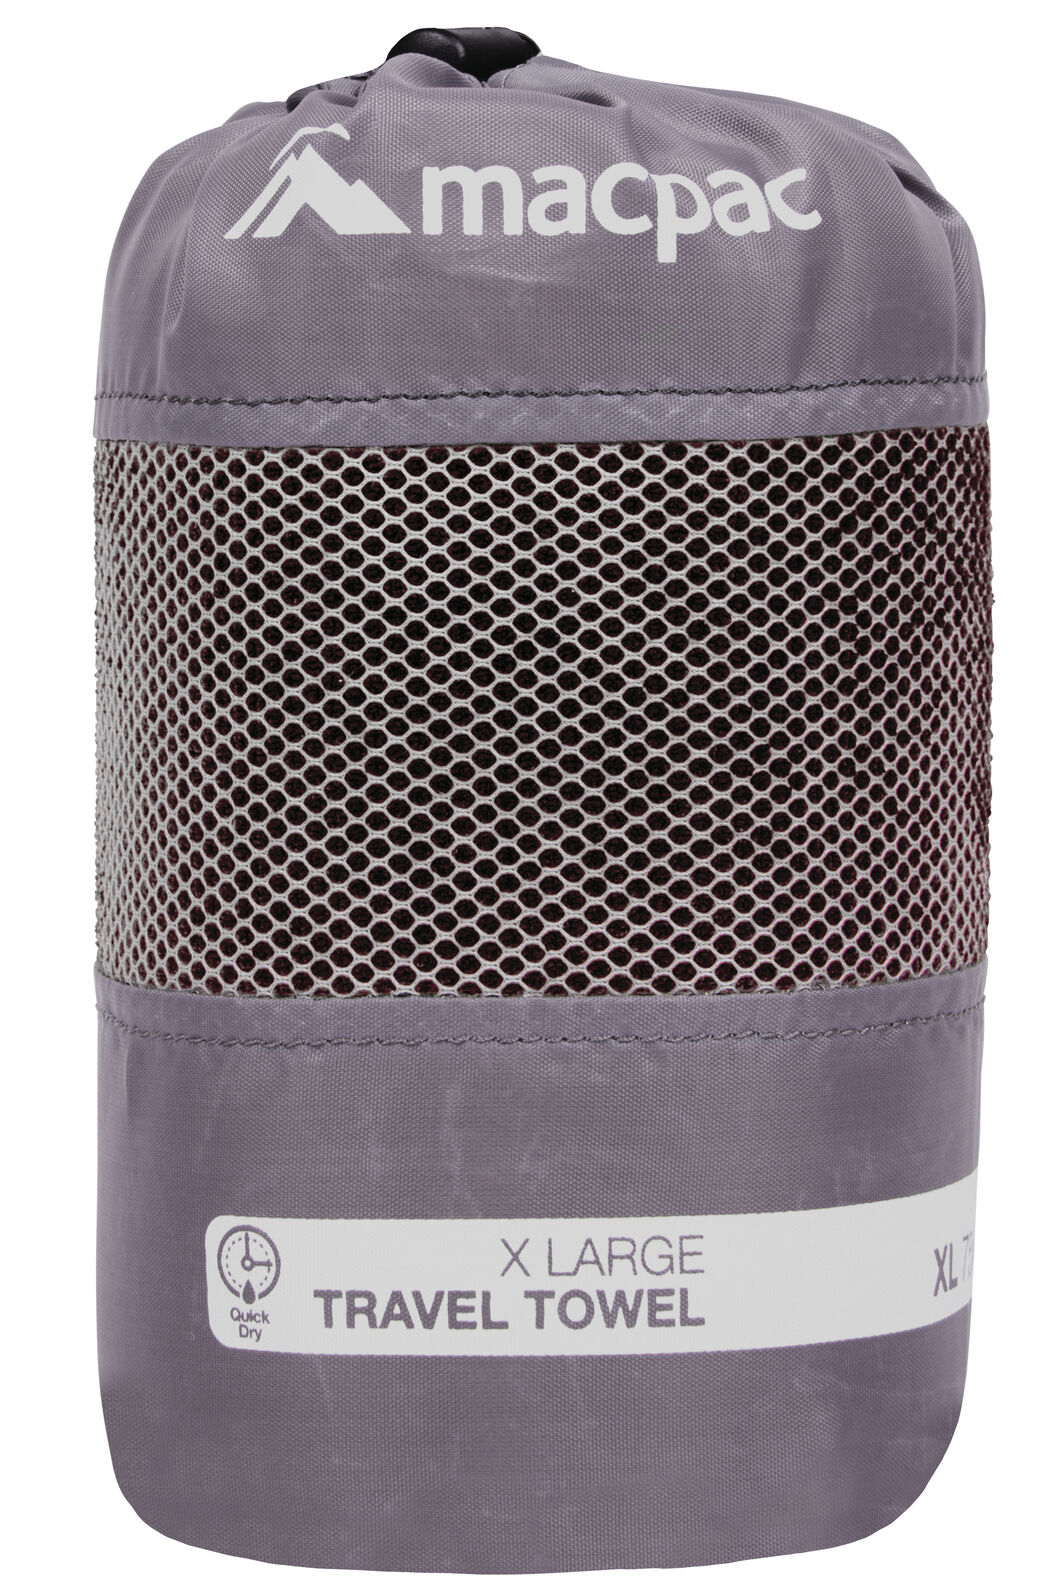 Macpac Travel Towel XL, Black, hi-res